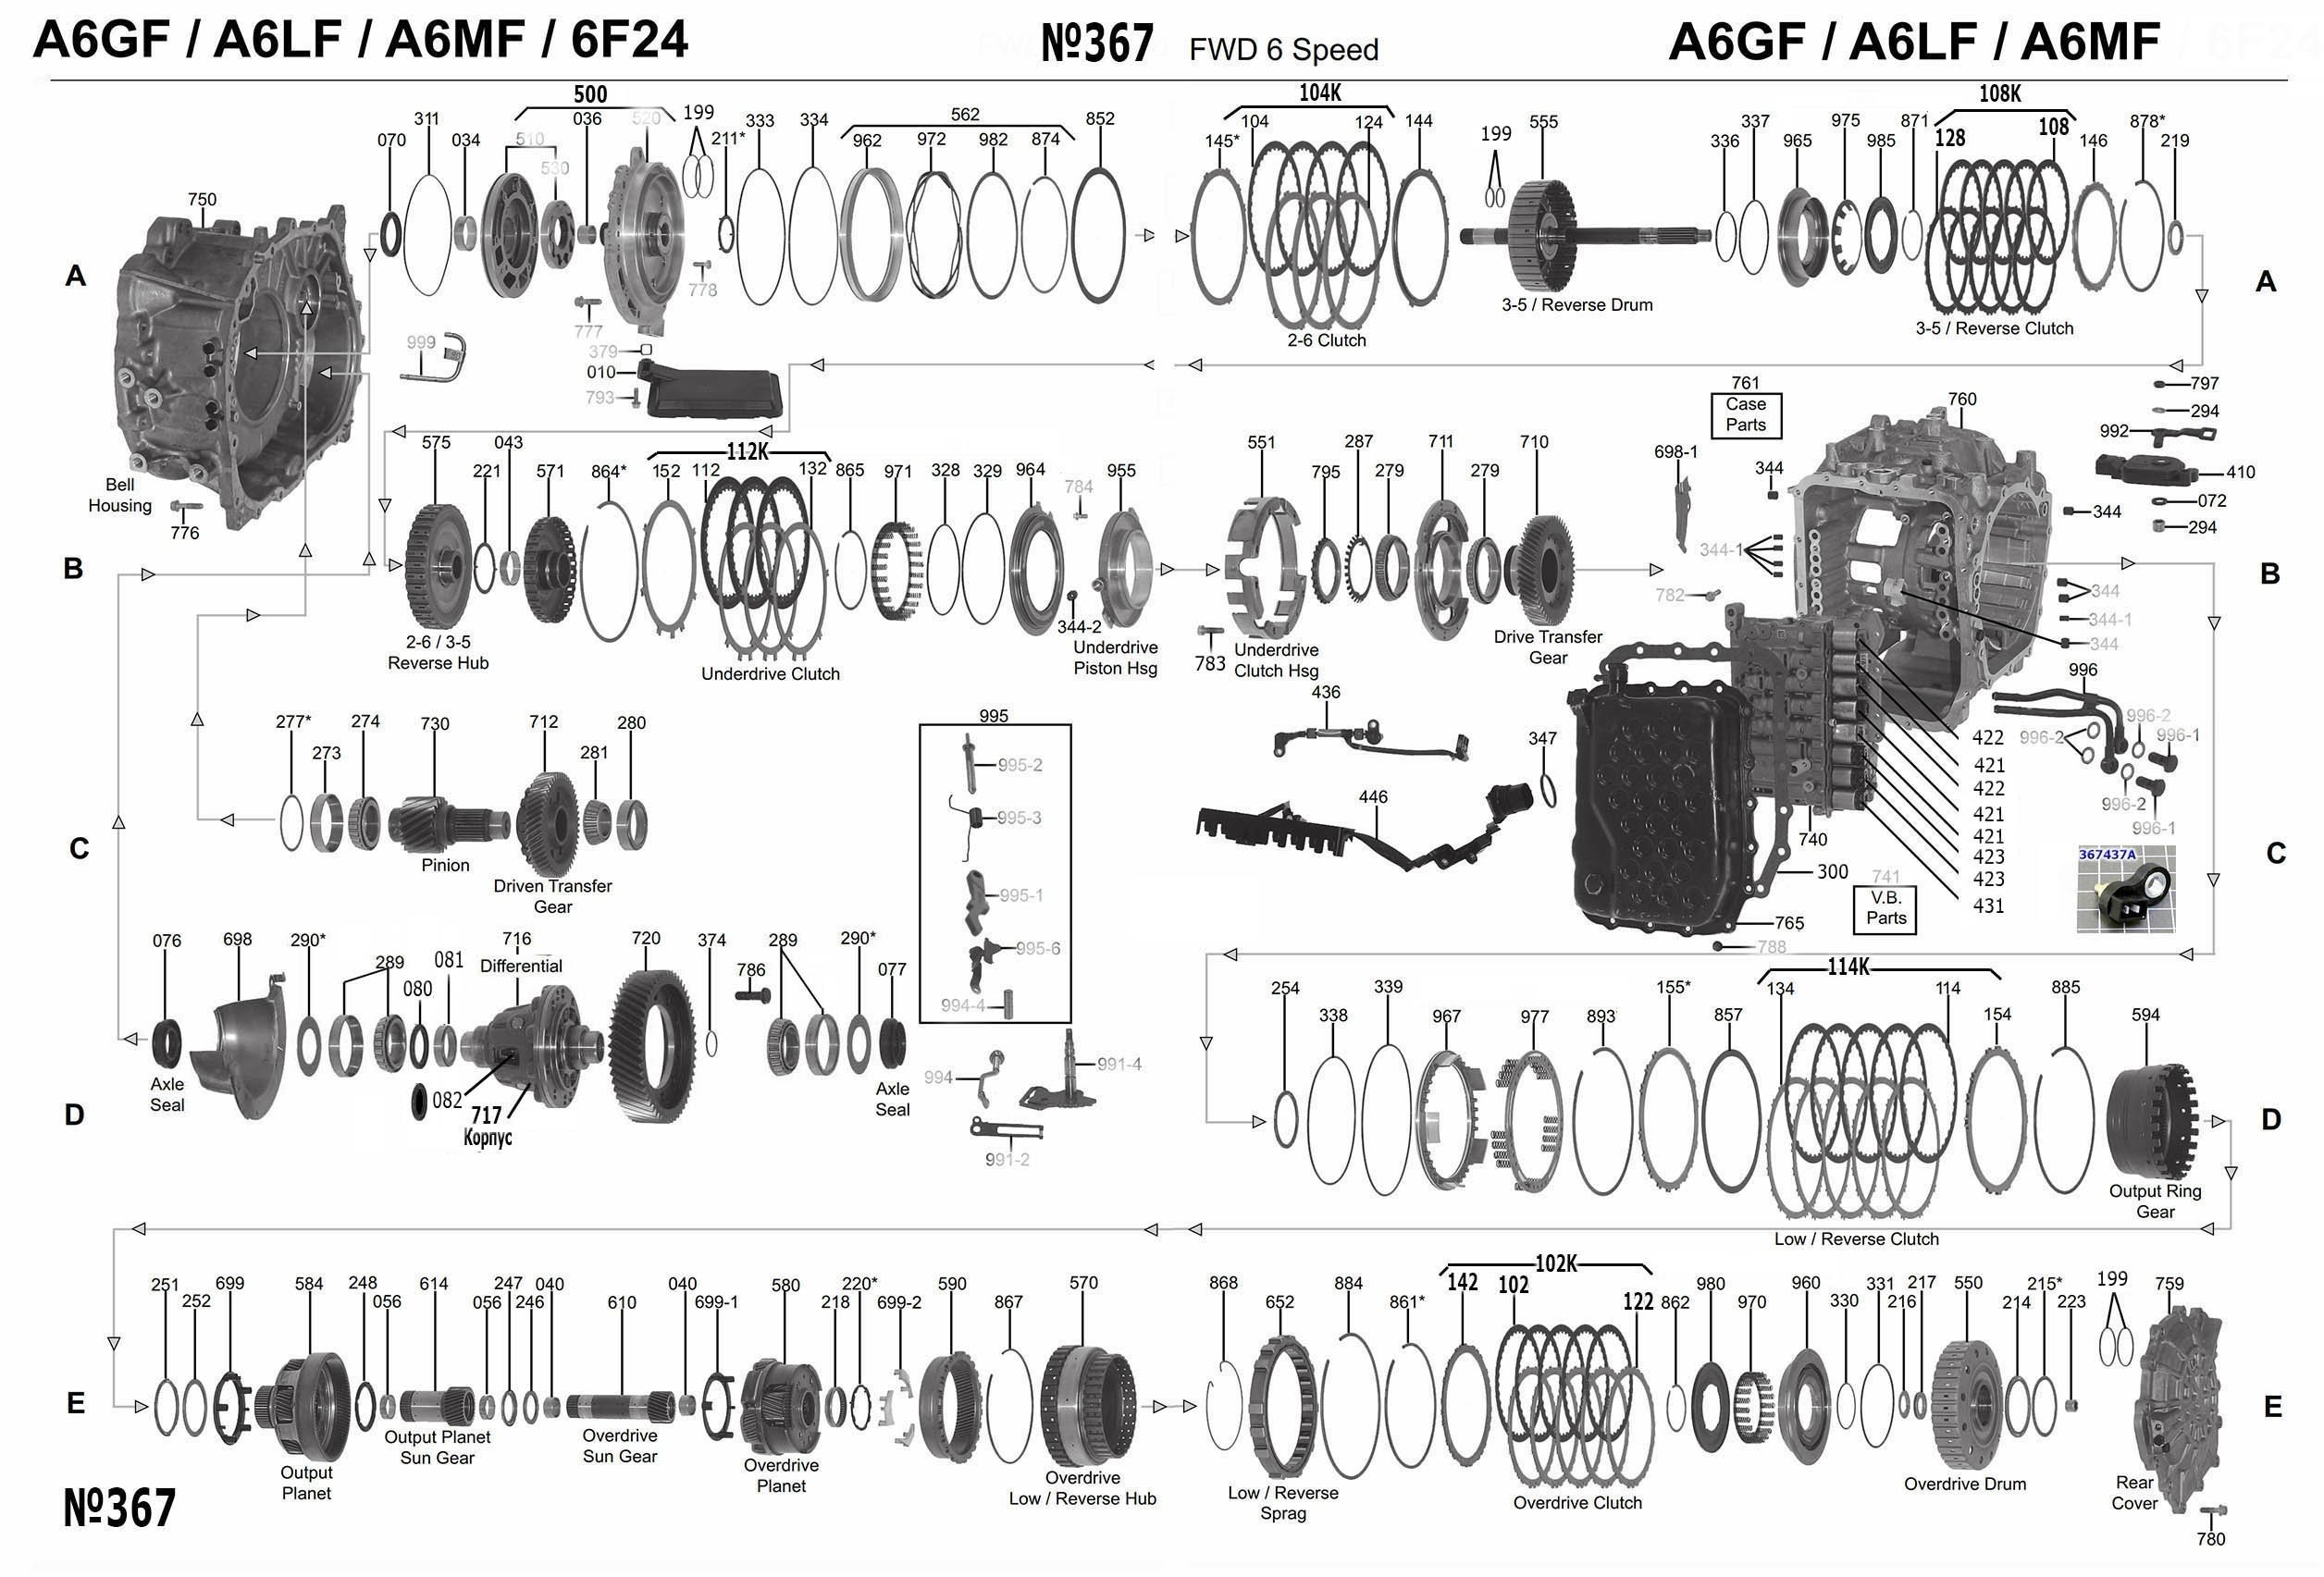 A6LF3 Transmission parts, repair guidelines, problems, manuals